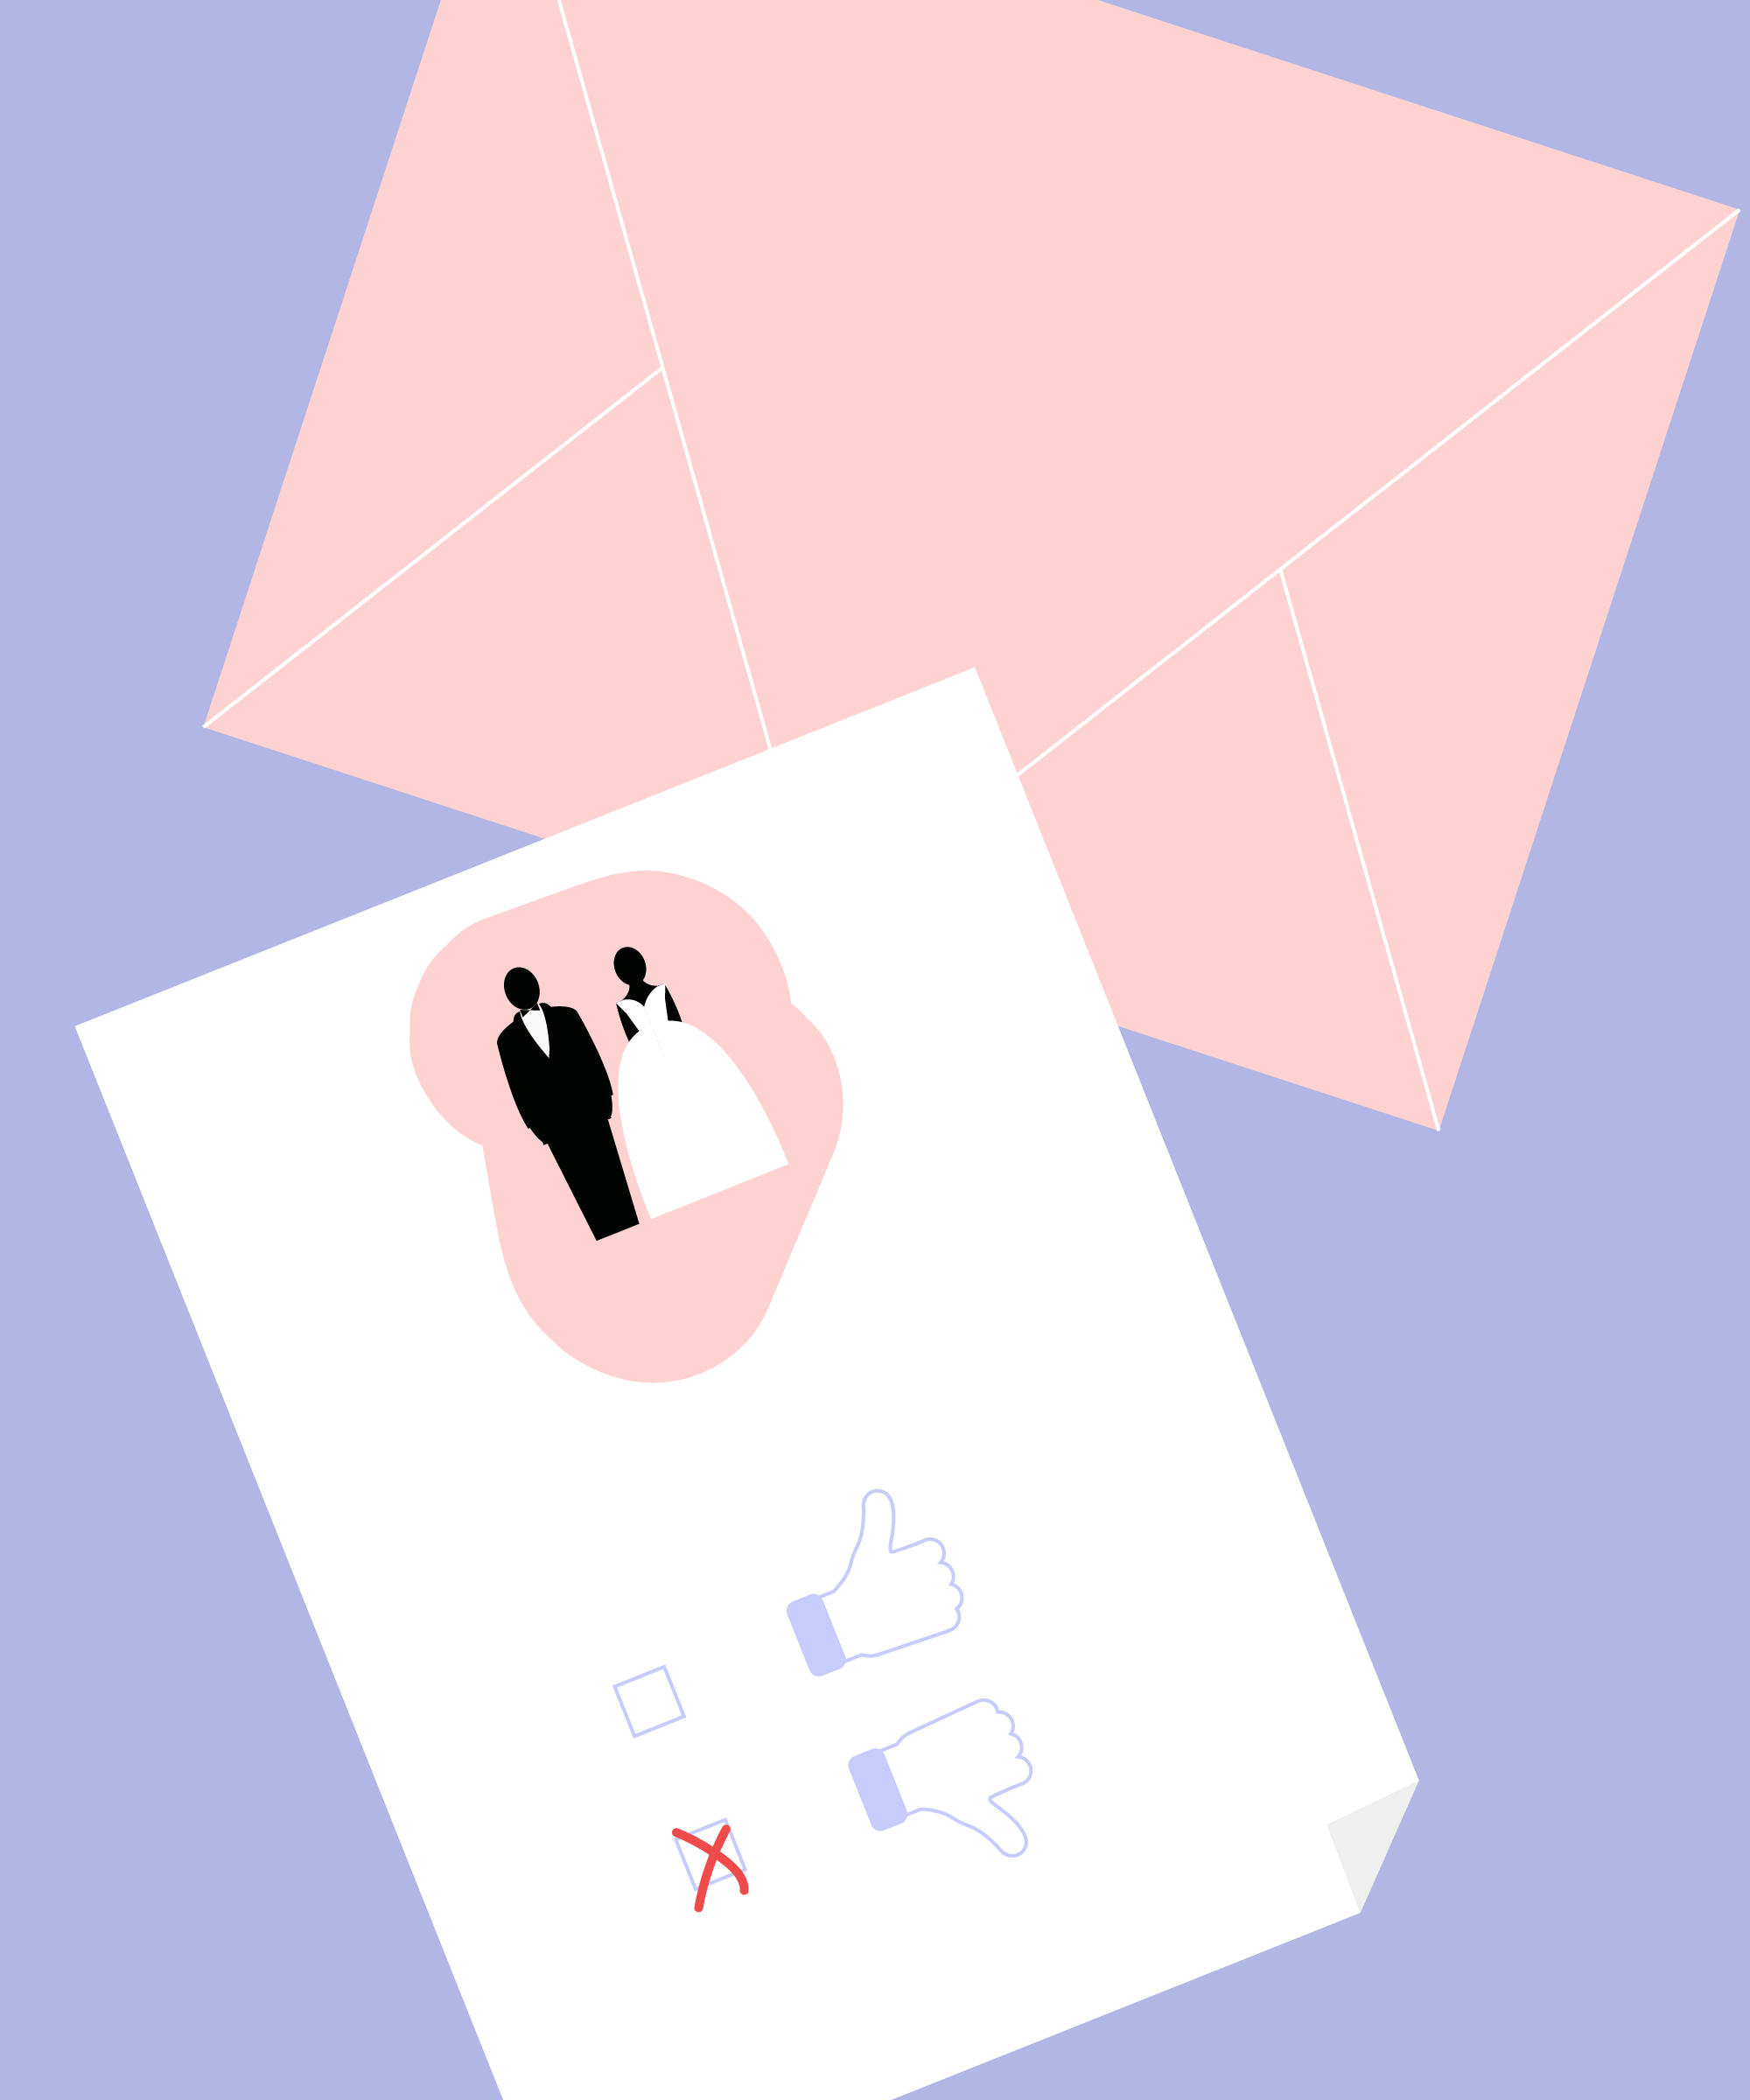 Digital Wedding Invitations Etiquette - Is It Tacky